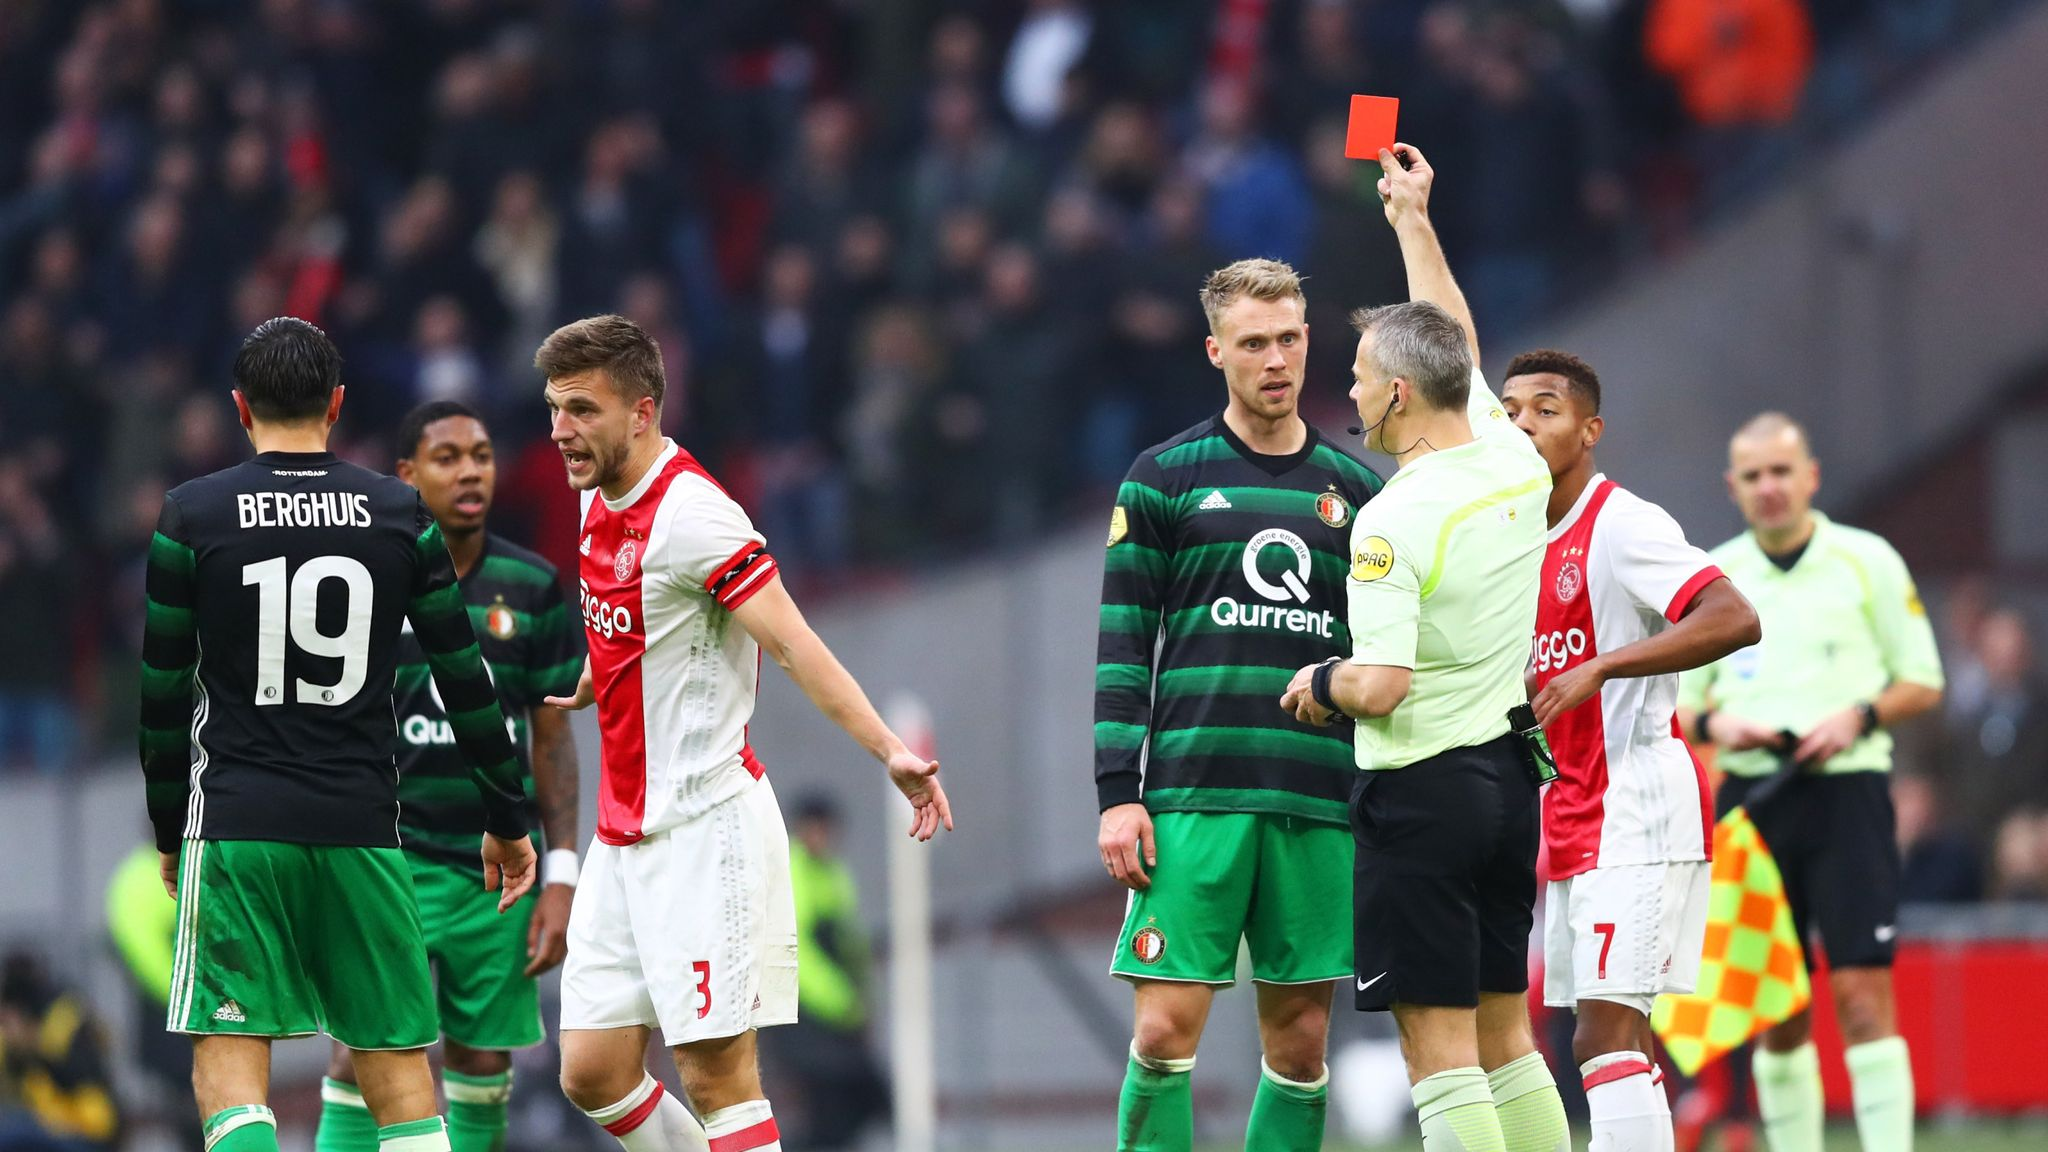 Eredivisie Round Up Ajax Beat 10 Man Feyenoord As Psv Stay Five Points Clear Football News Sky Sports